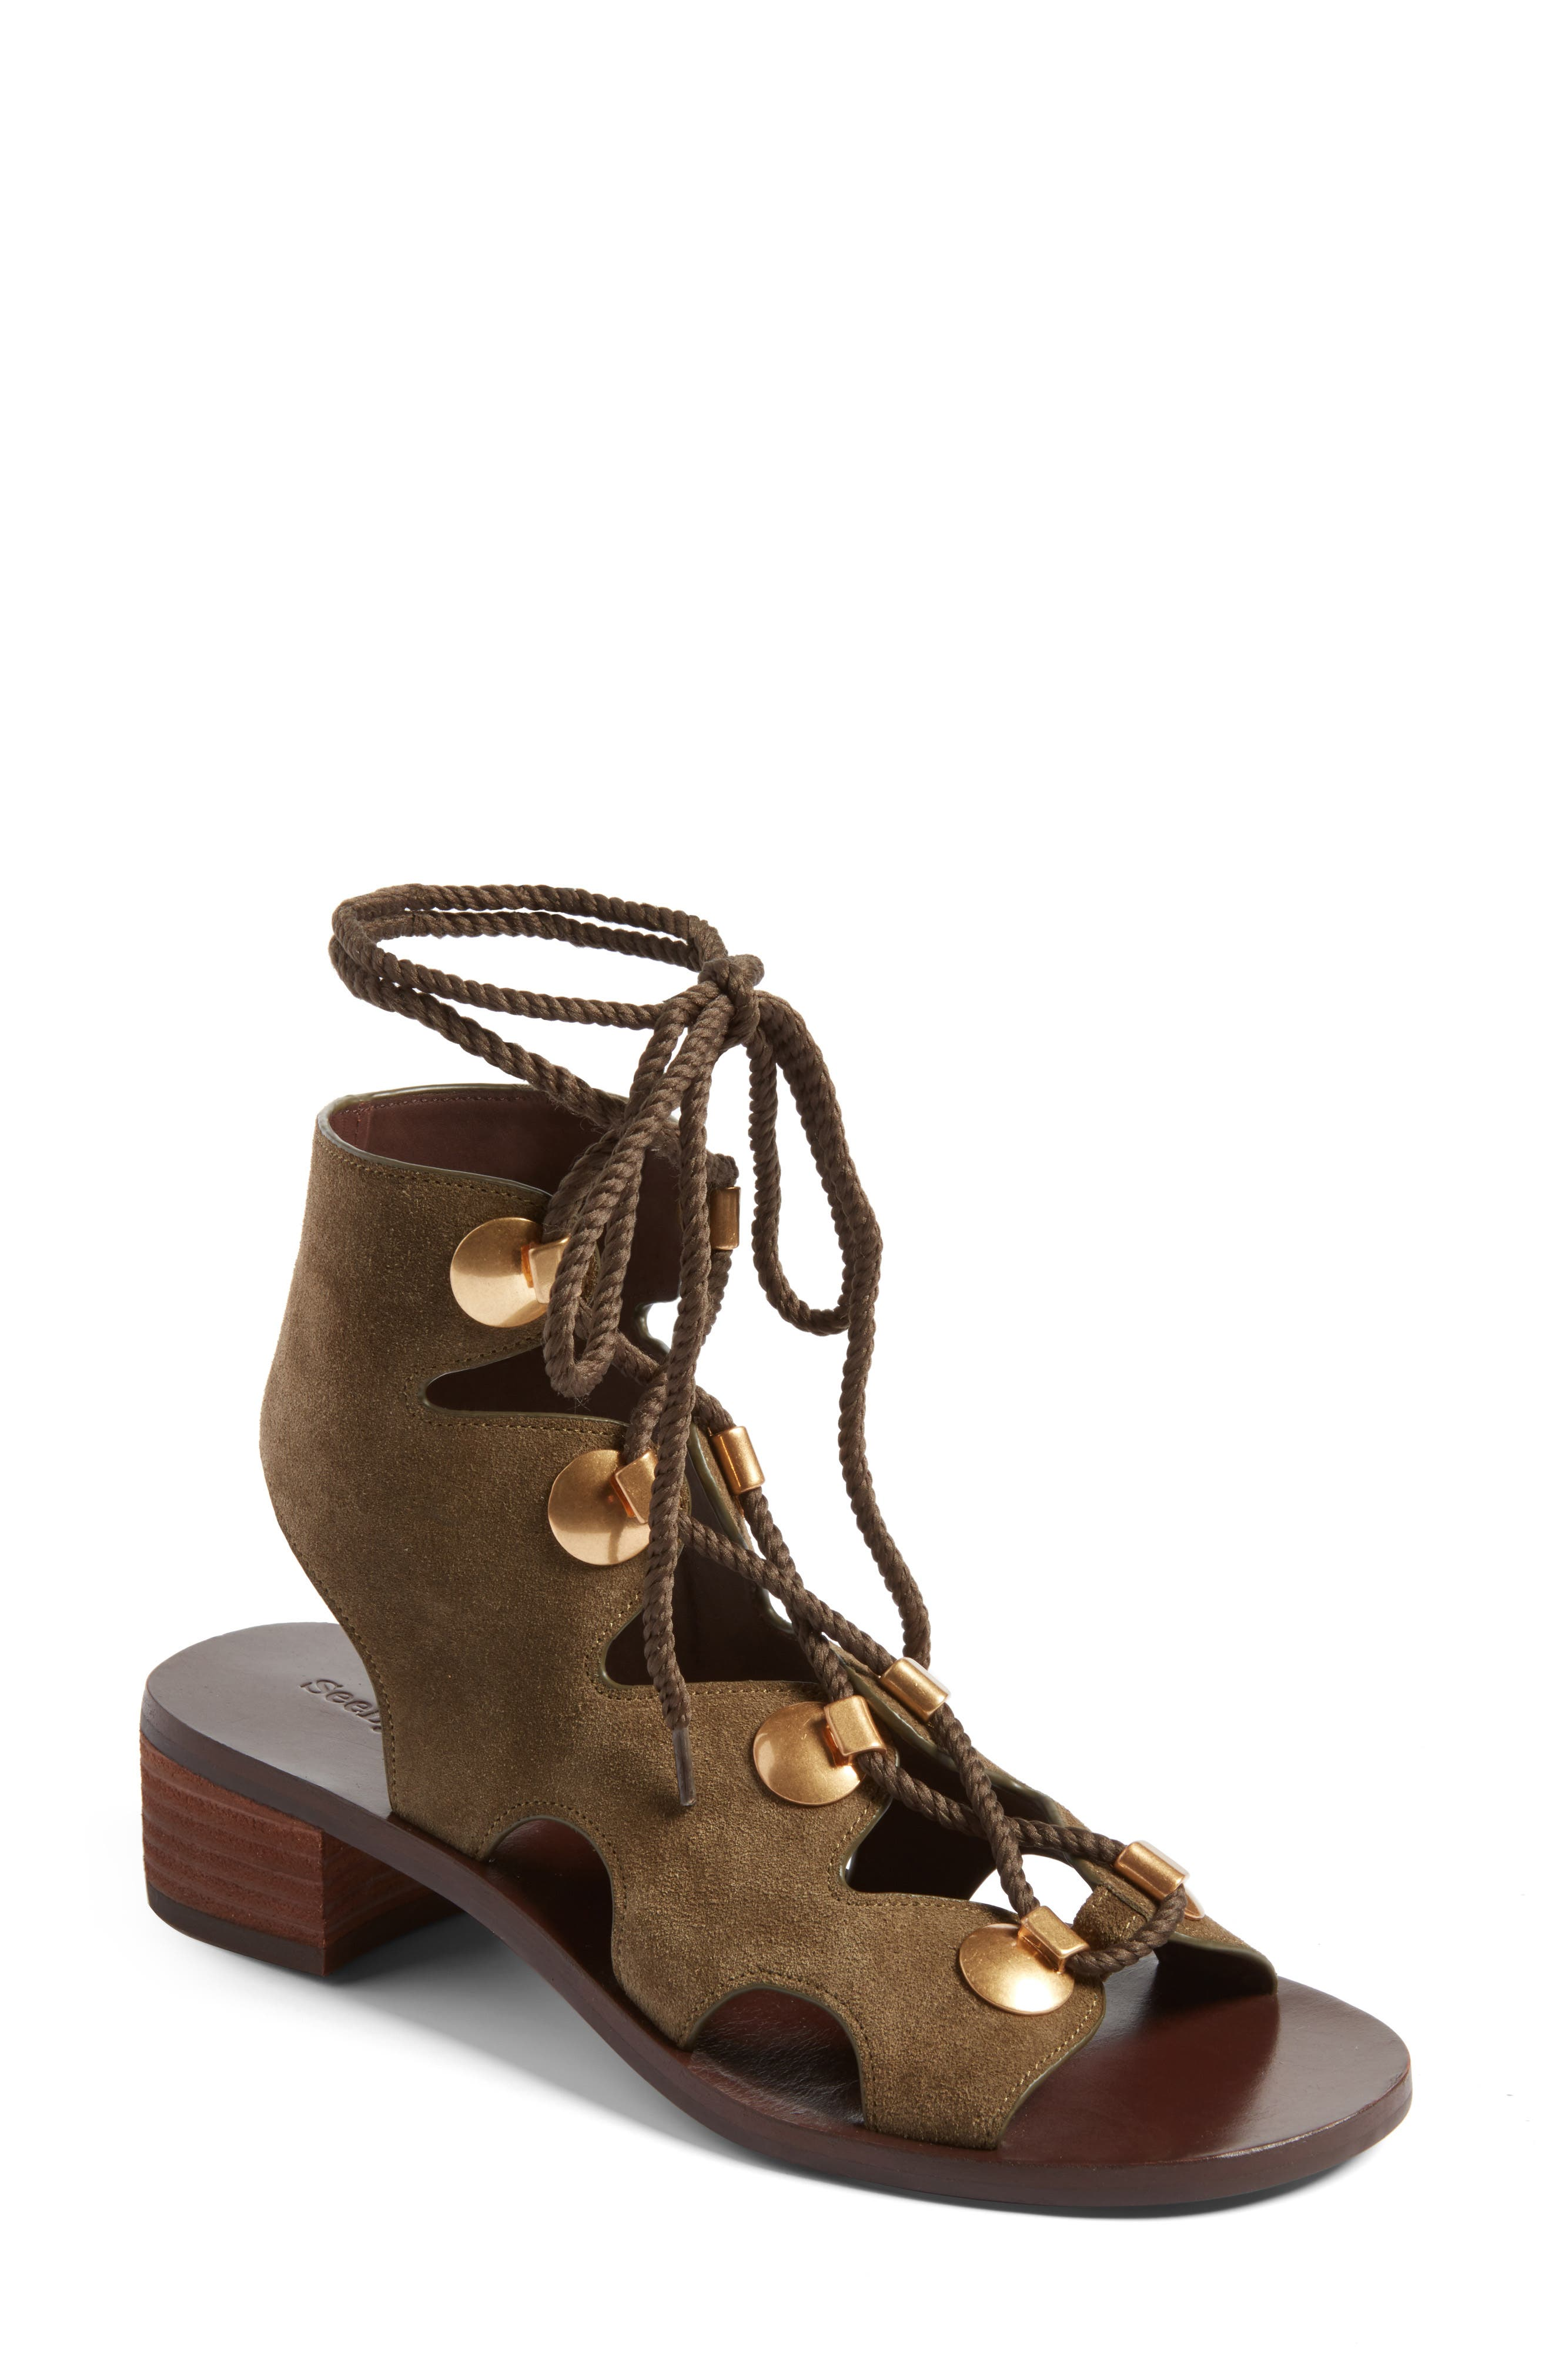 See by Chloe Edna Gladiator Sandal,                             Main thumbnail 1, color,                             Olive